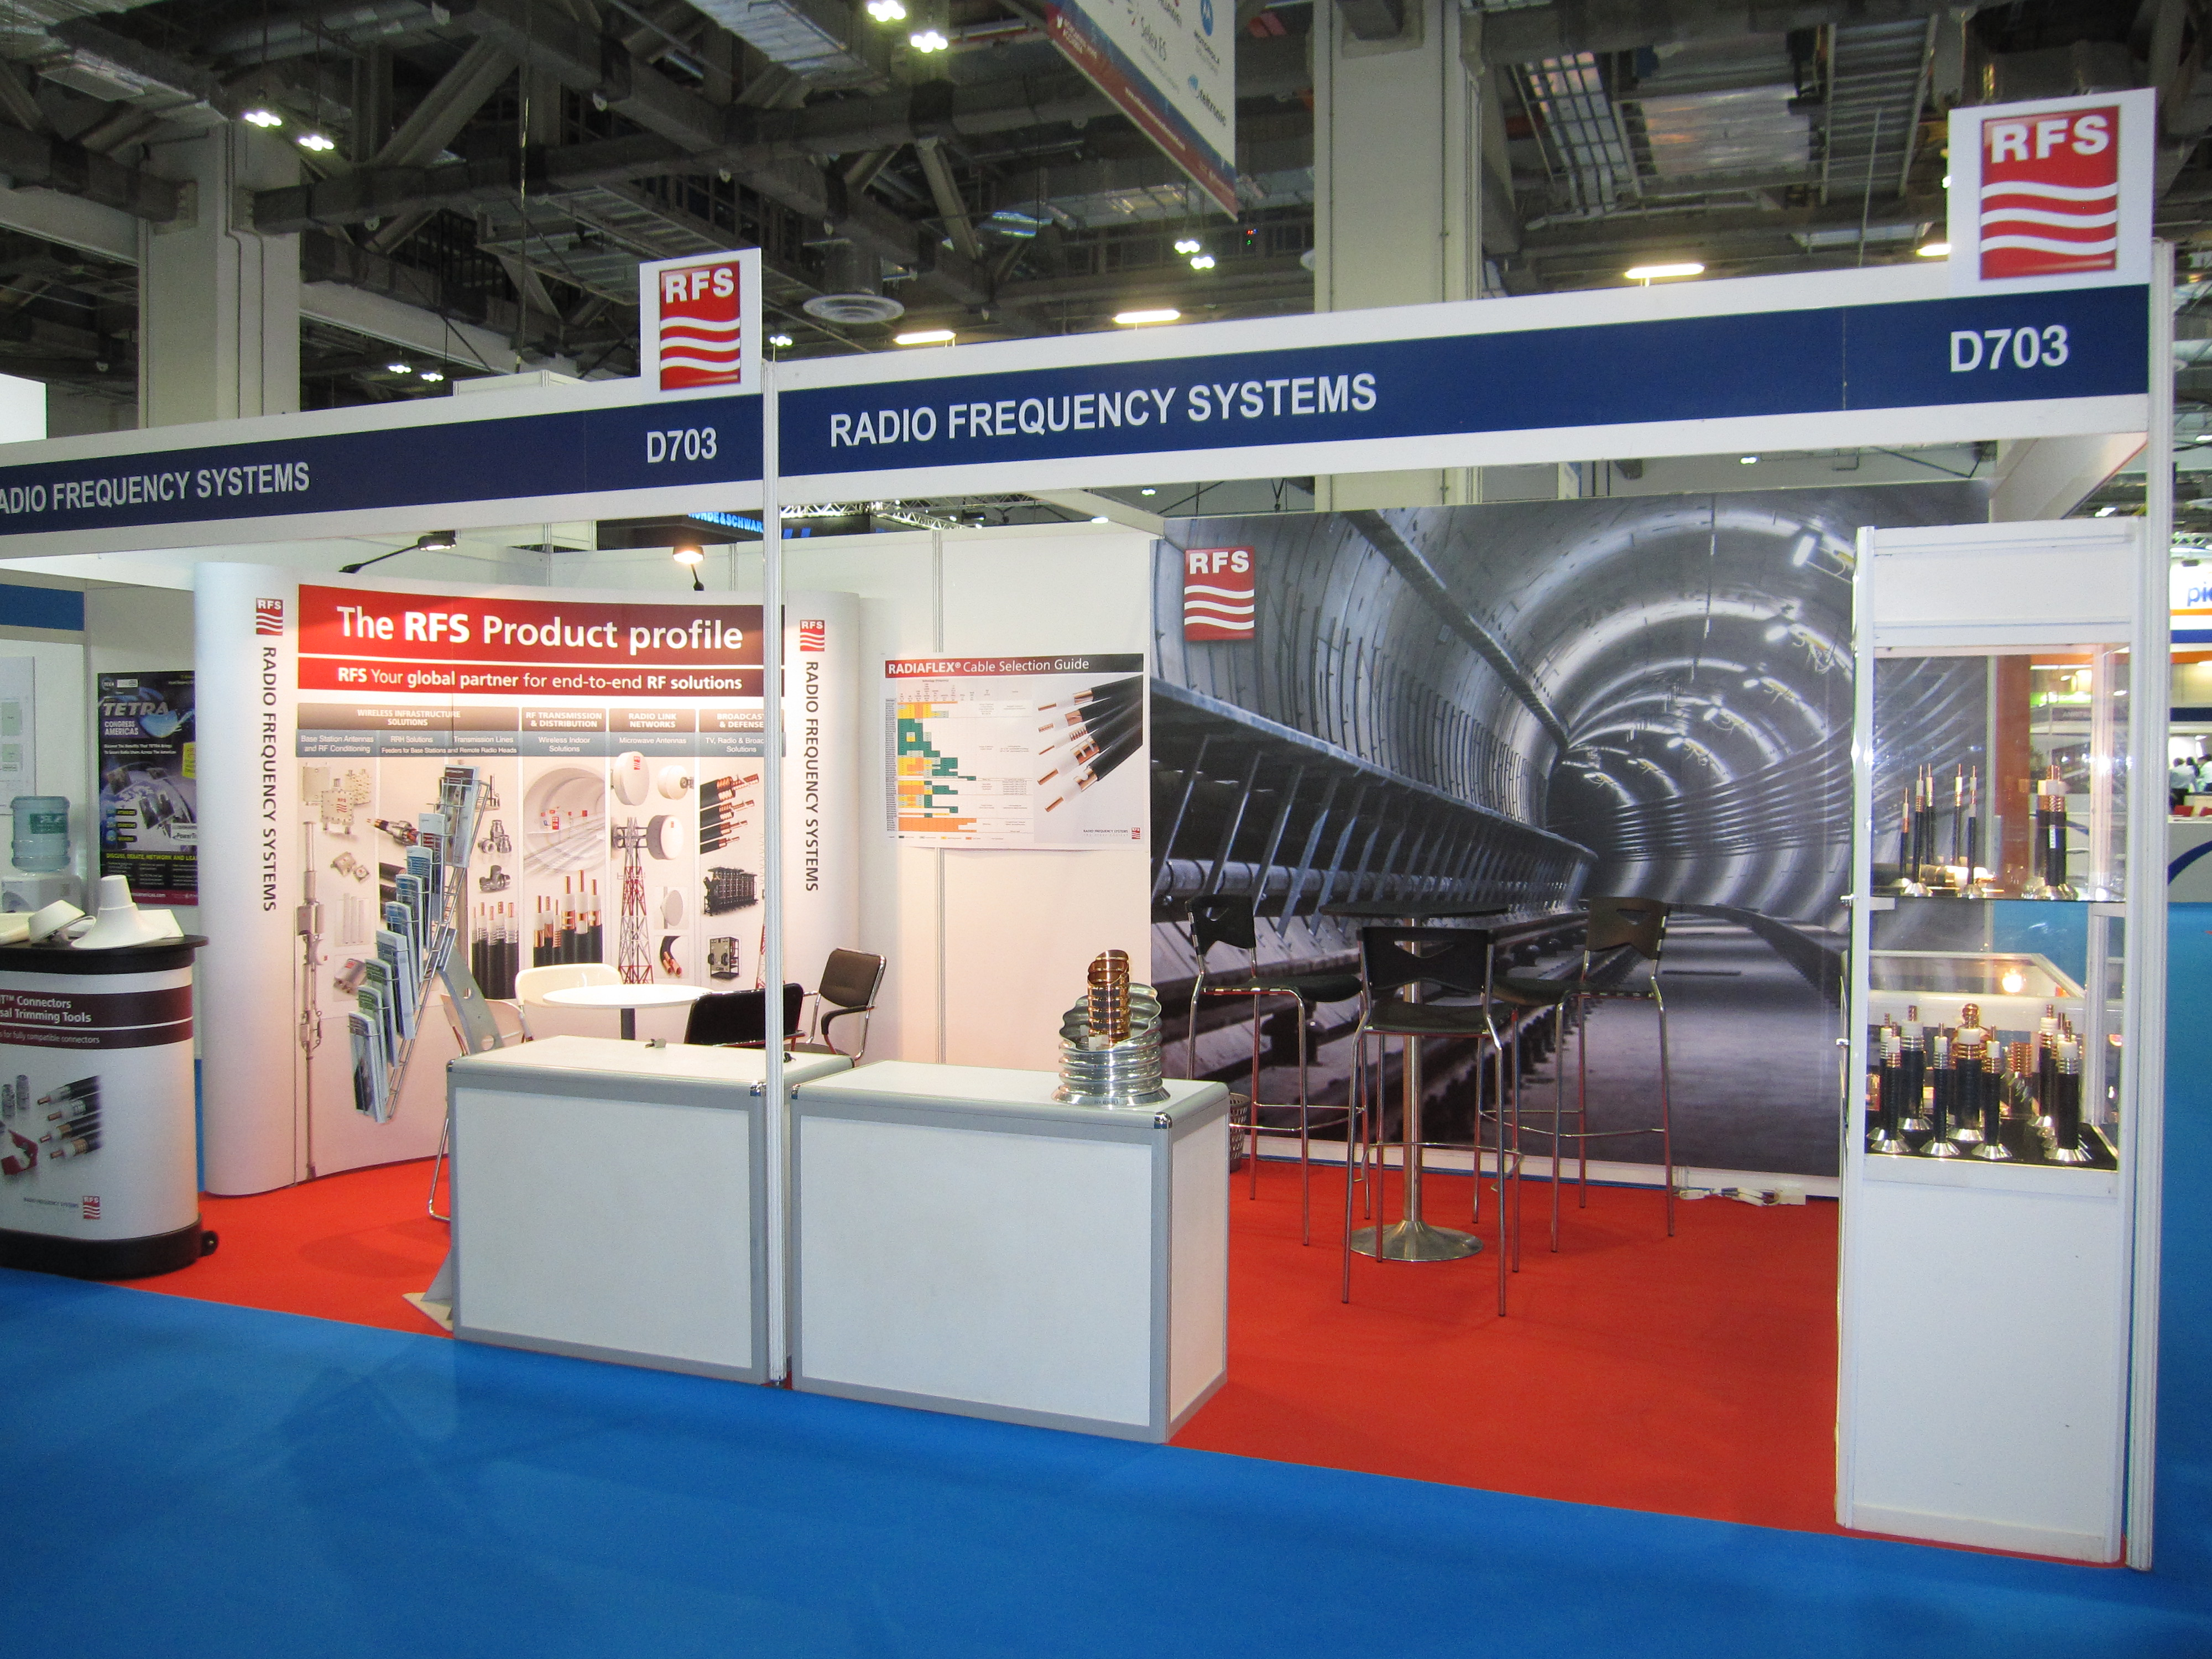 RFS: RFS In-Tunnel And In-Building Wireless